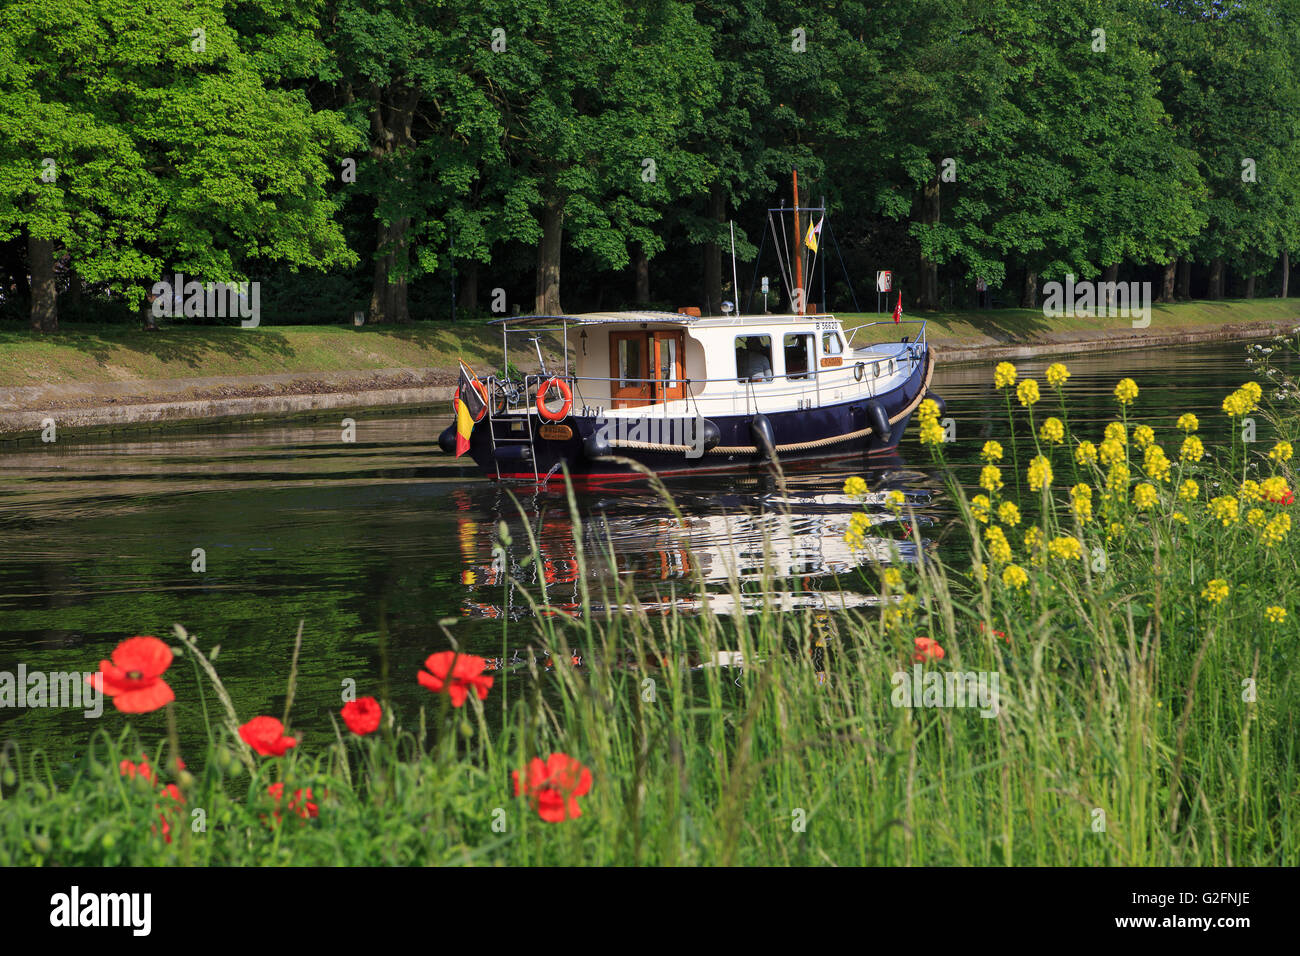 A motorboat cruising on the ring canal near the Kruisvest in Bruges, Belgium - Stock Image